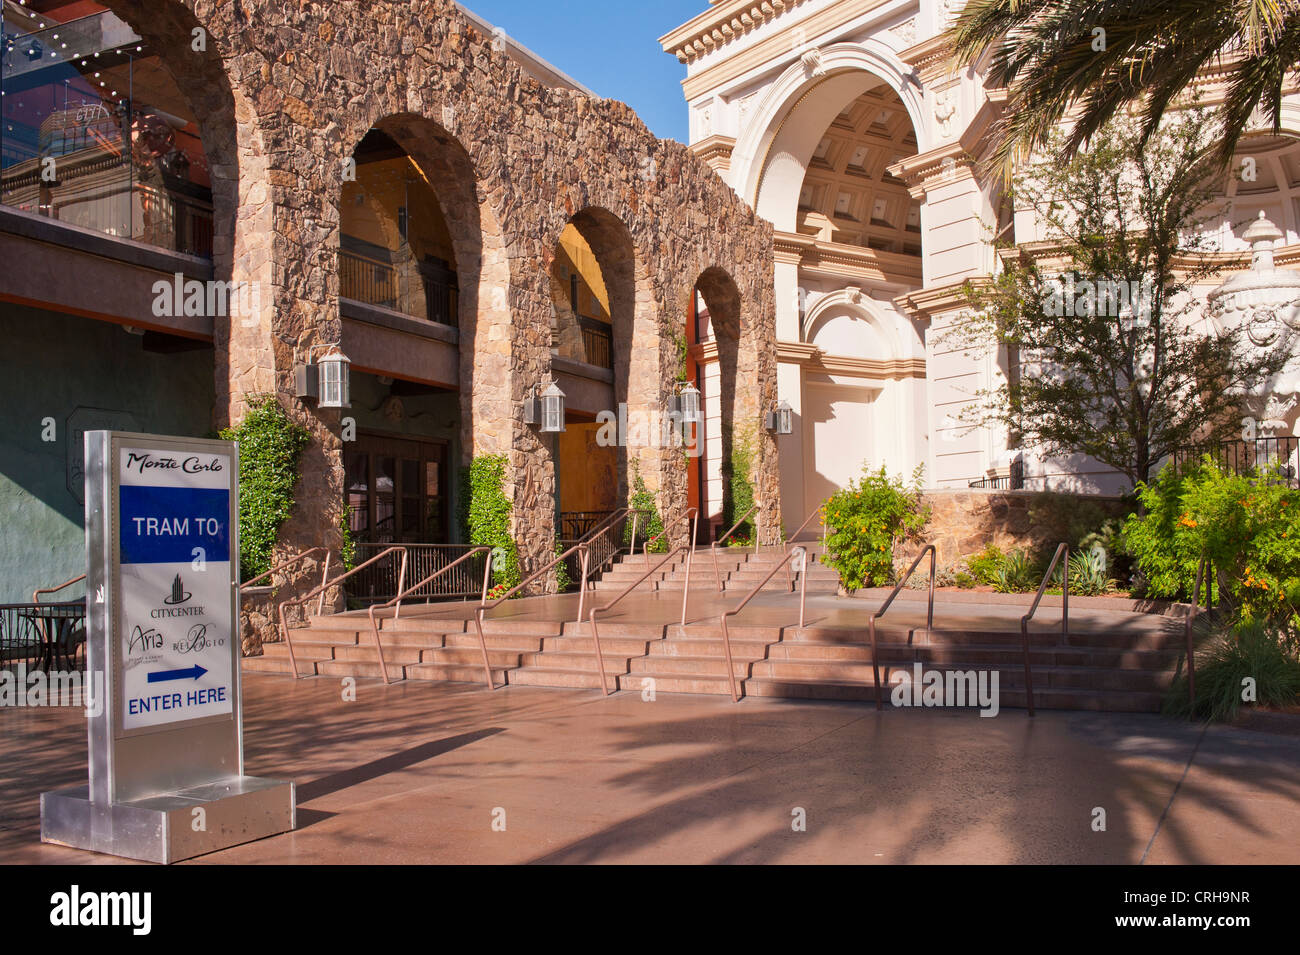 entrance to the monte carlo resort hotel casino in las vegas